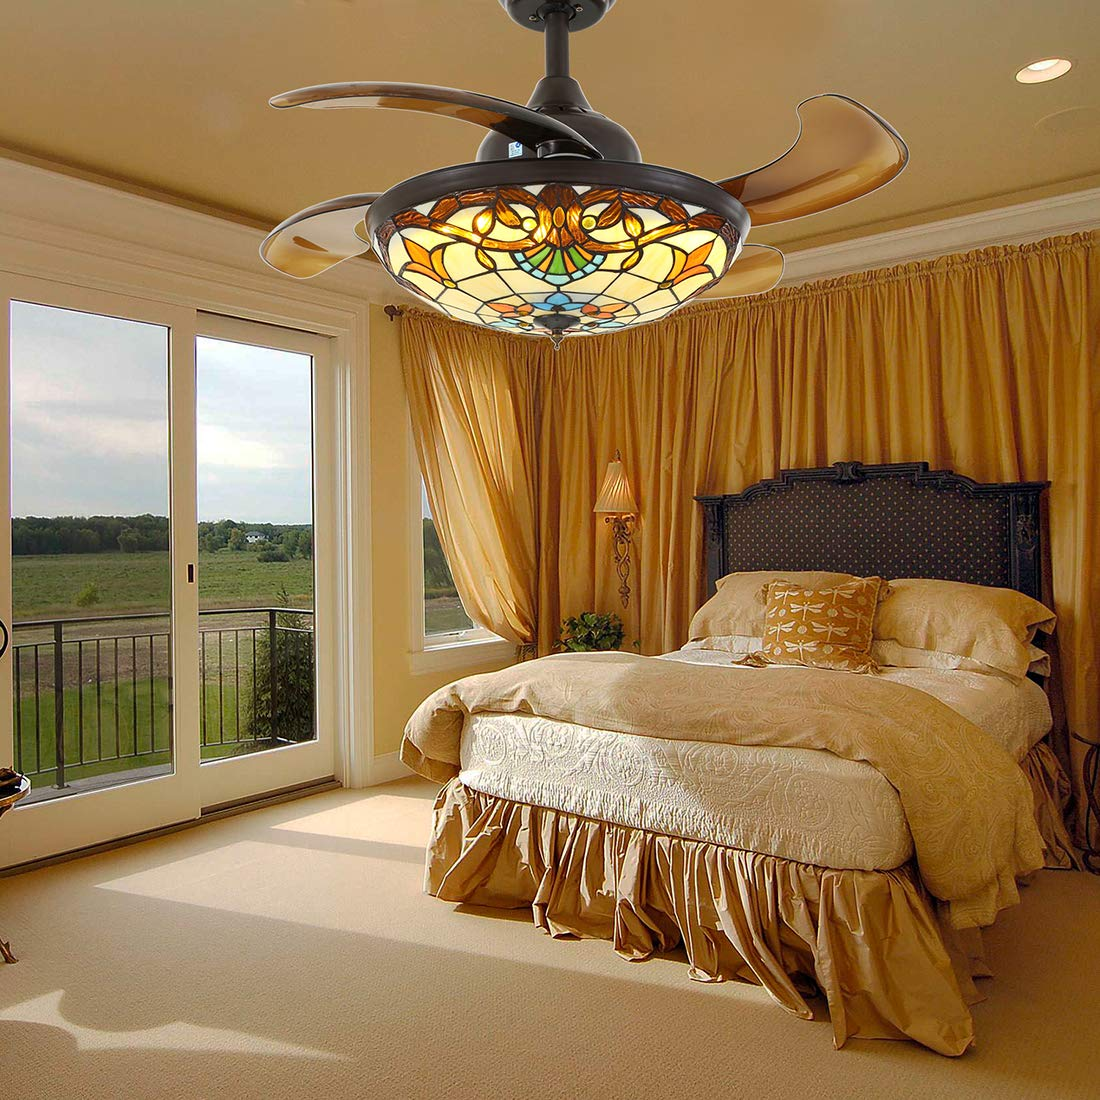 Chandelier Ceiling Fan with Dimmable Lights Retractable Coffee Tiffany Fan Fandelier with Remote